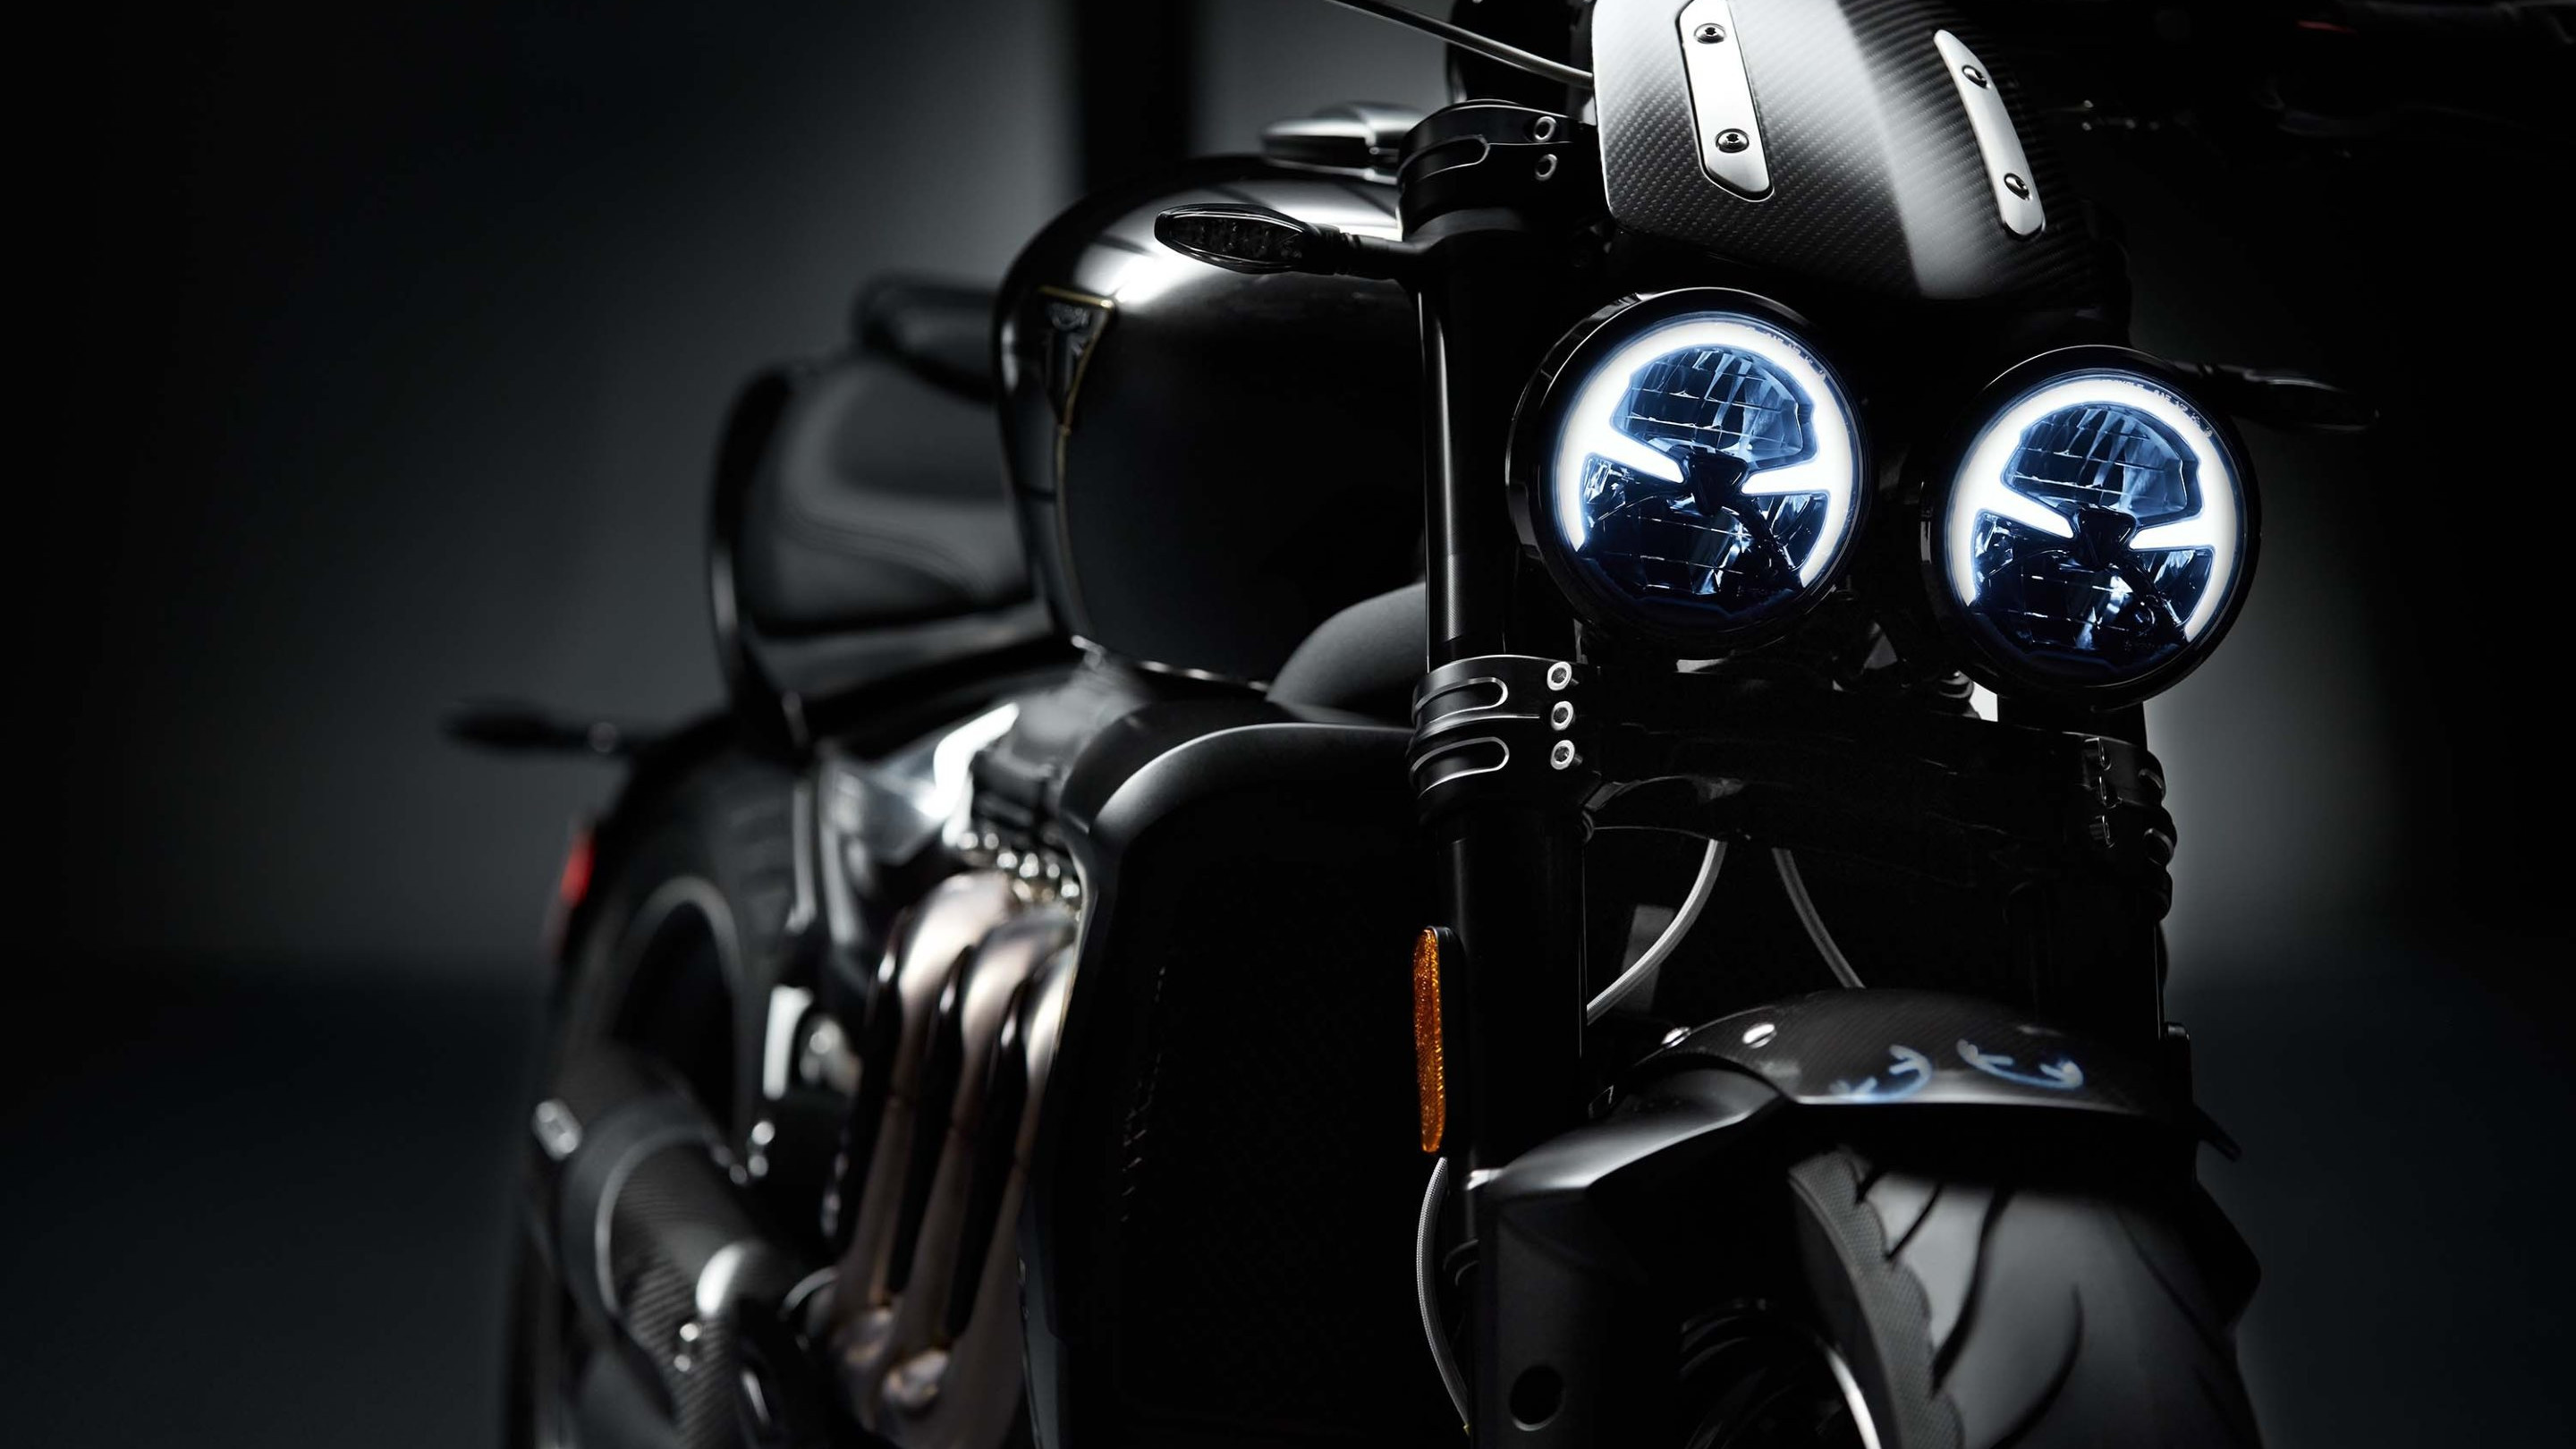 Triumph Rocket 3 TFC | 2880x1620 wallpaper